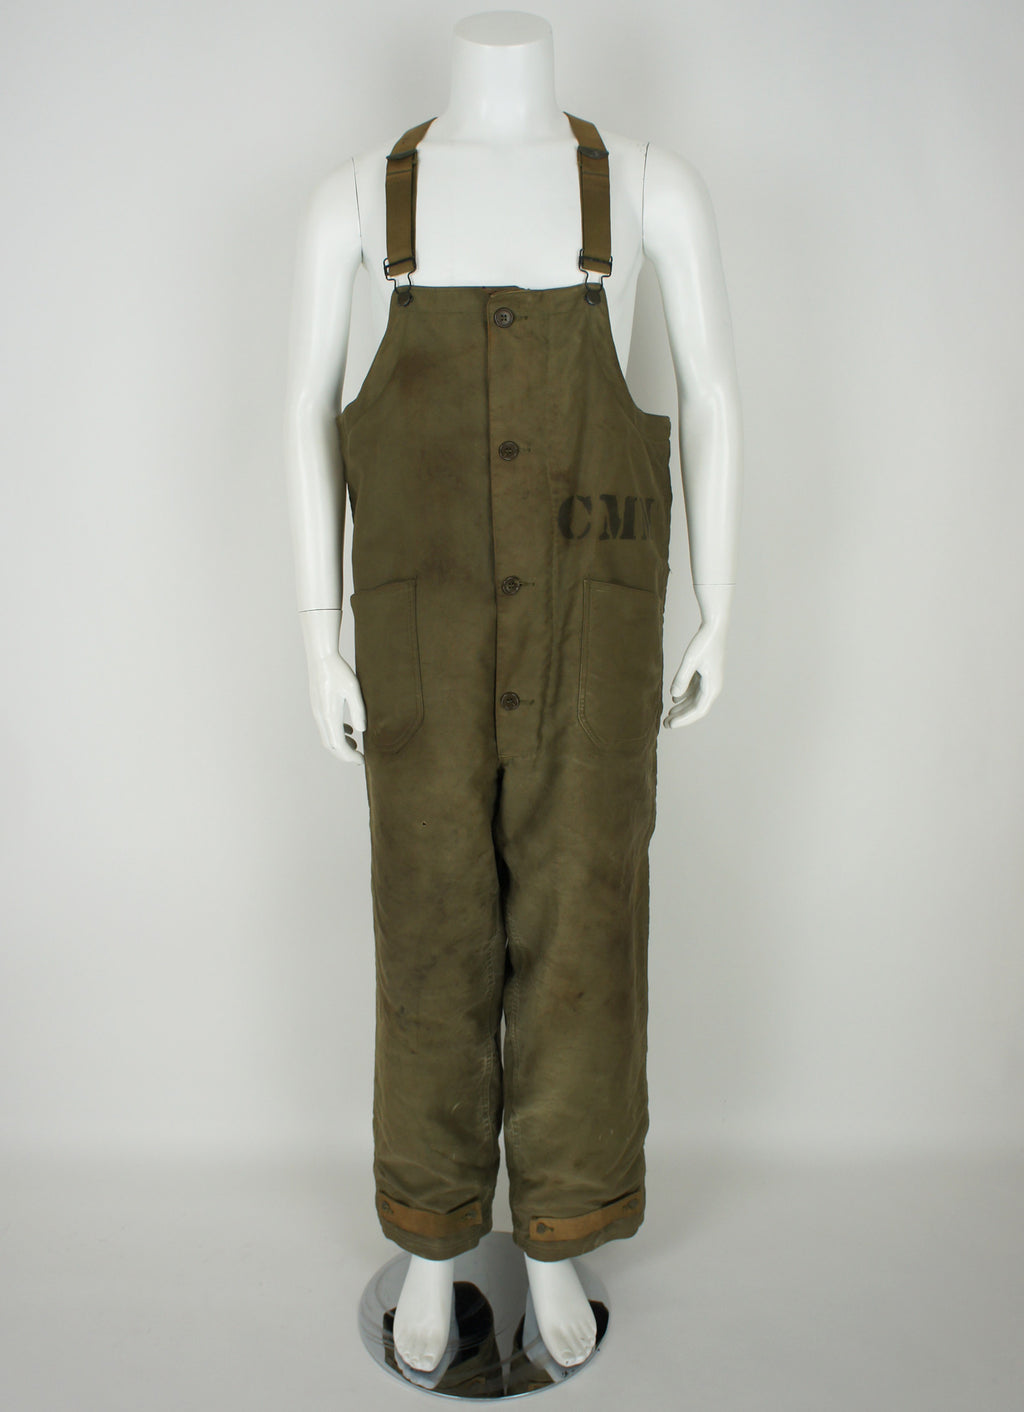 WWII USN Winter Deck Uniform Overalls